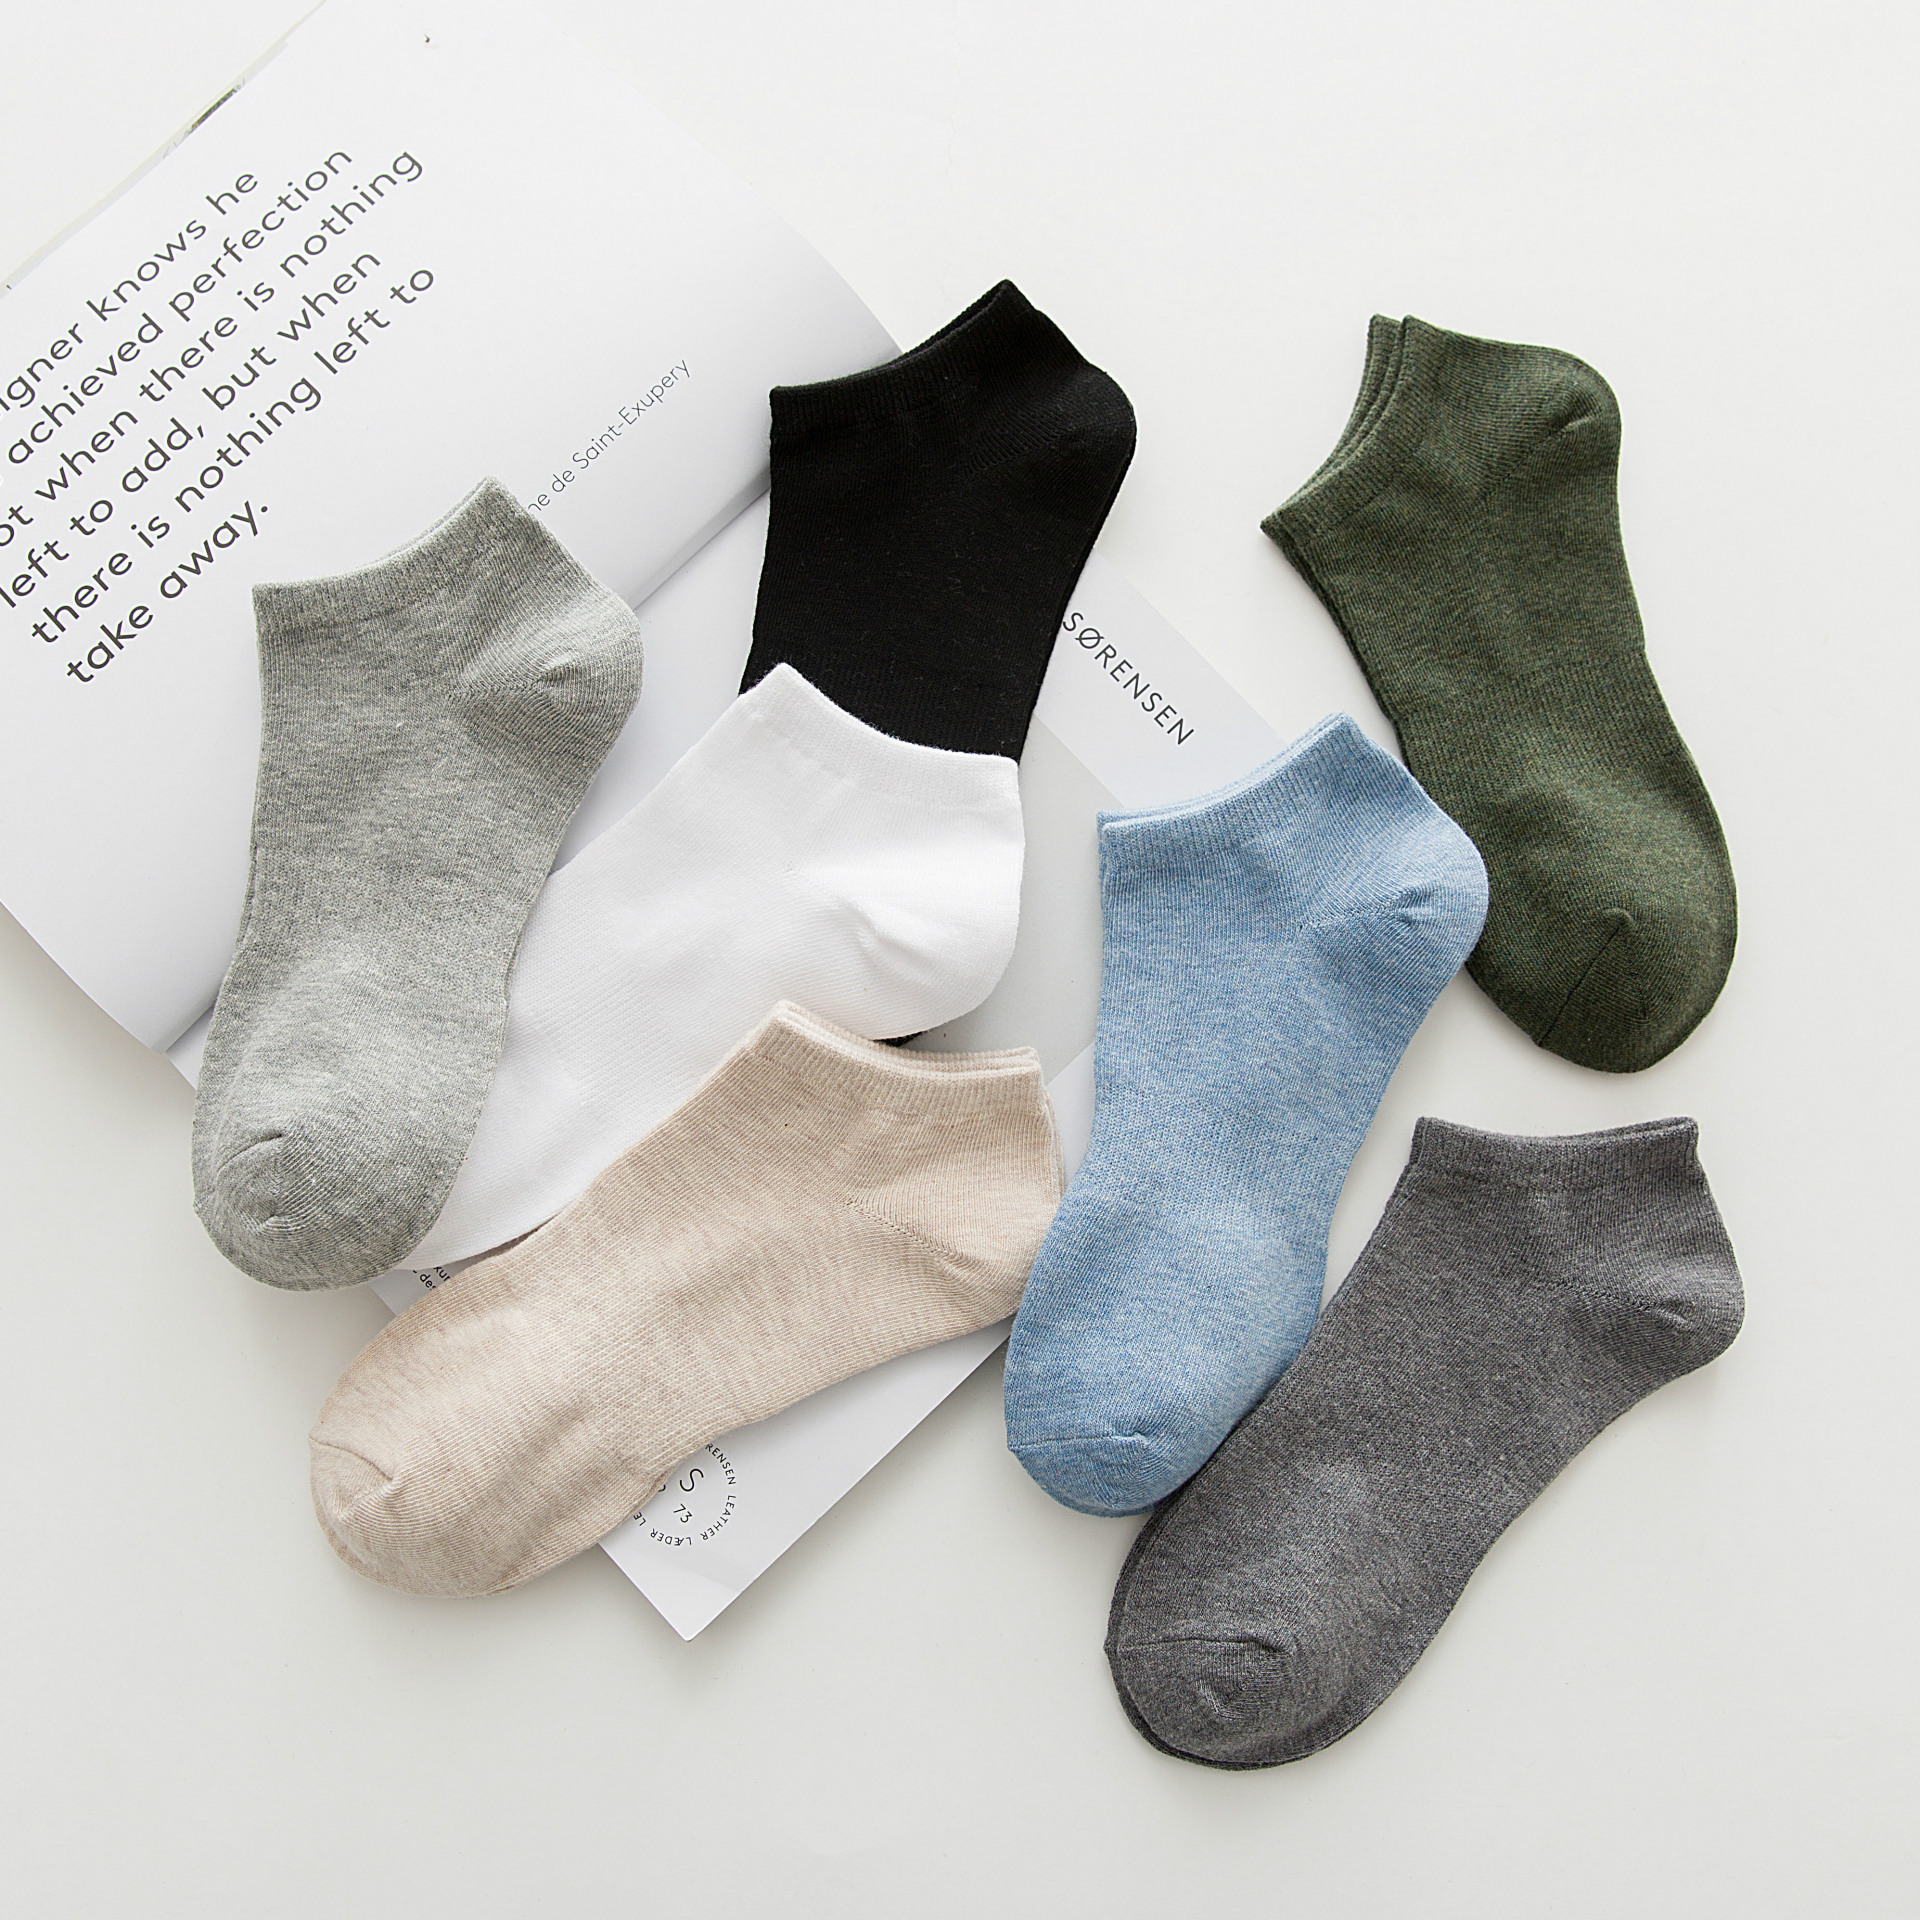 Four seasons solid color casual men socks Cotton mixed color 5 pairs of men socks